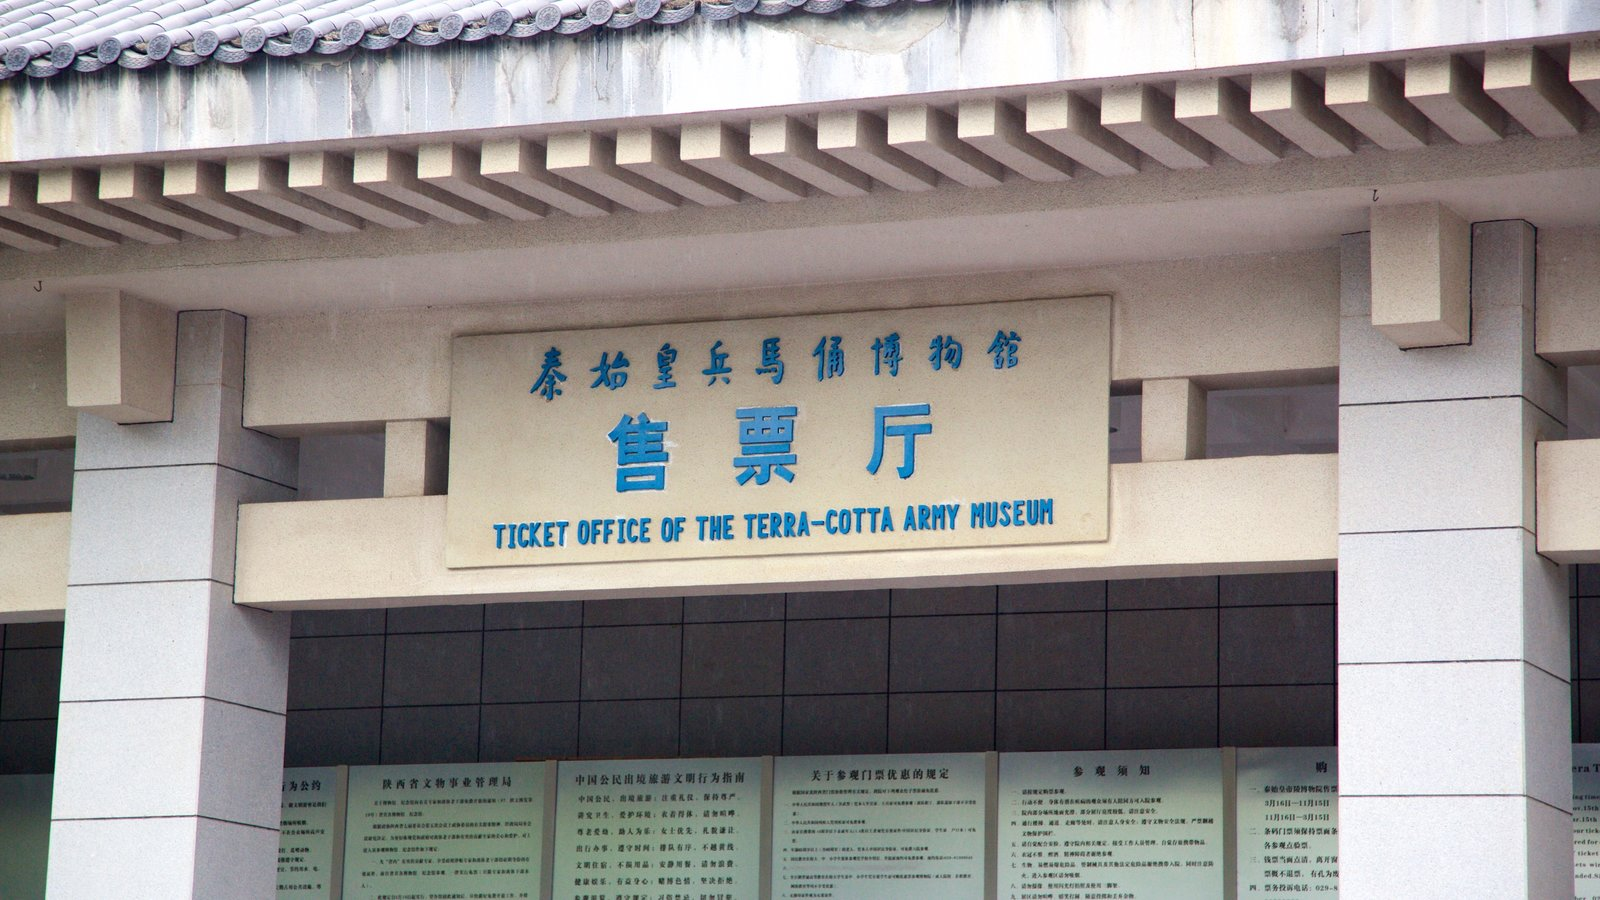 Terracota Army which includes signage